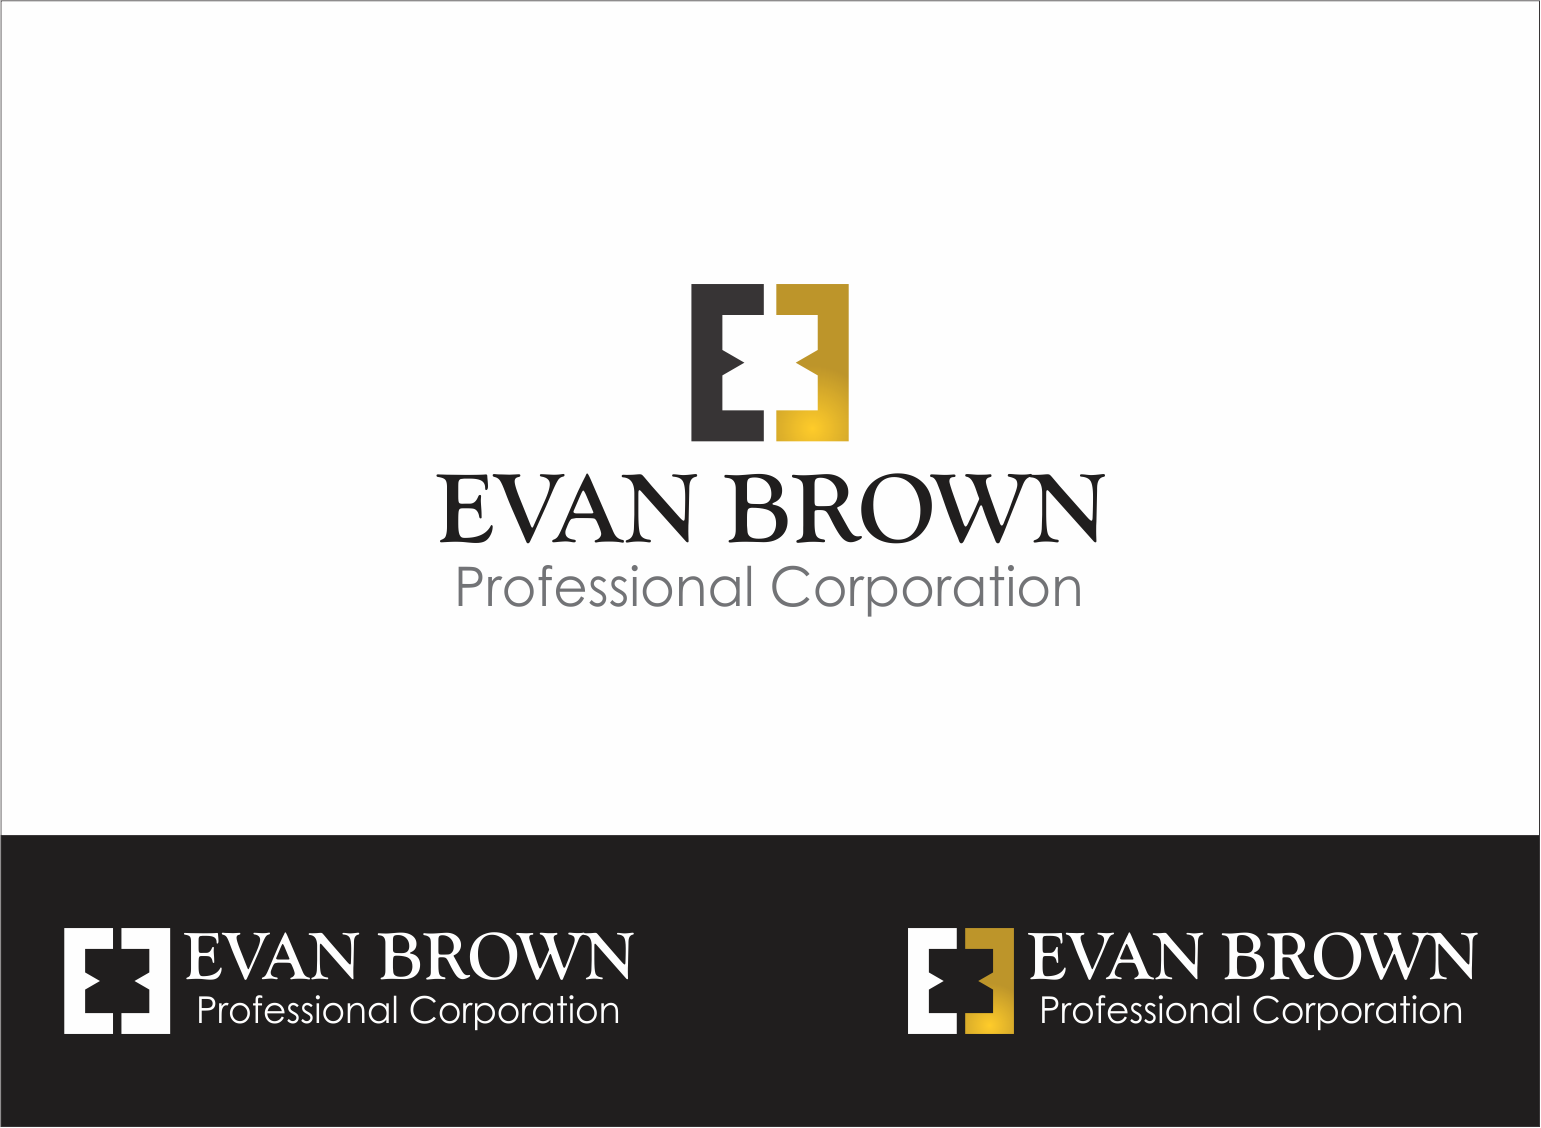 Logo Design by Armada Jamaluddin - Entry No. 28 in the Logo Design Contest Inspiring Logo Design for Evan Brown Professional Corporation.